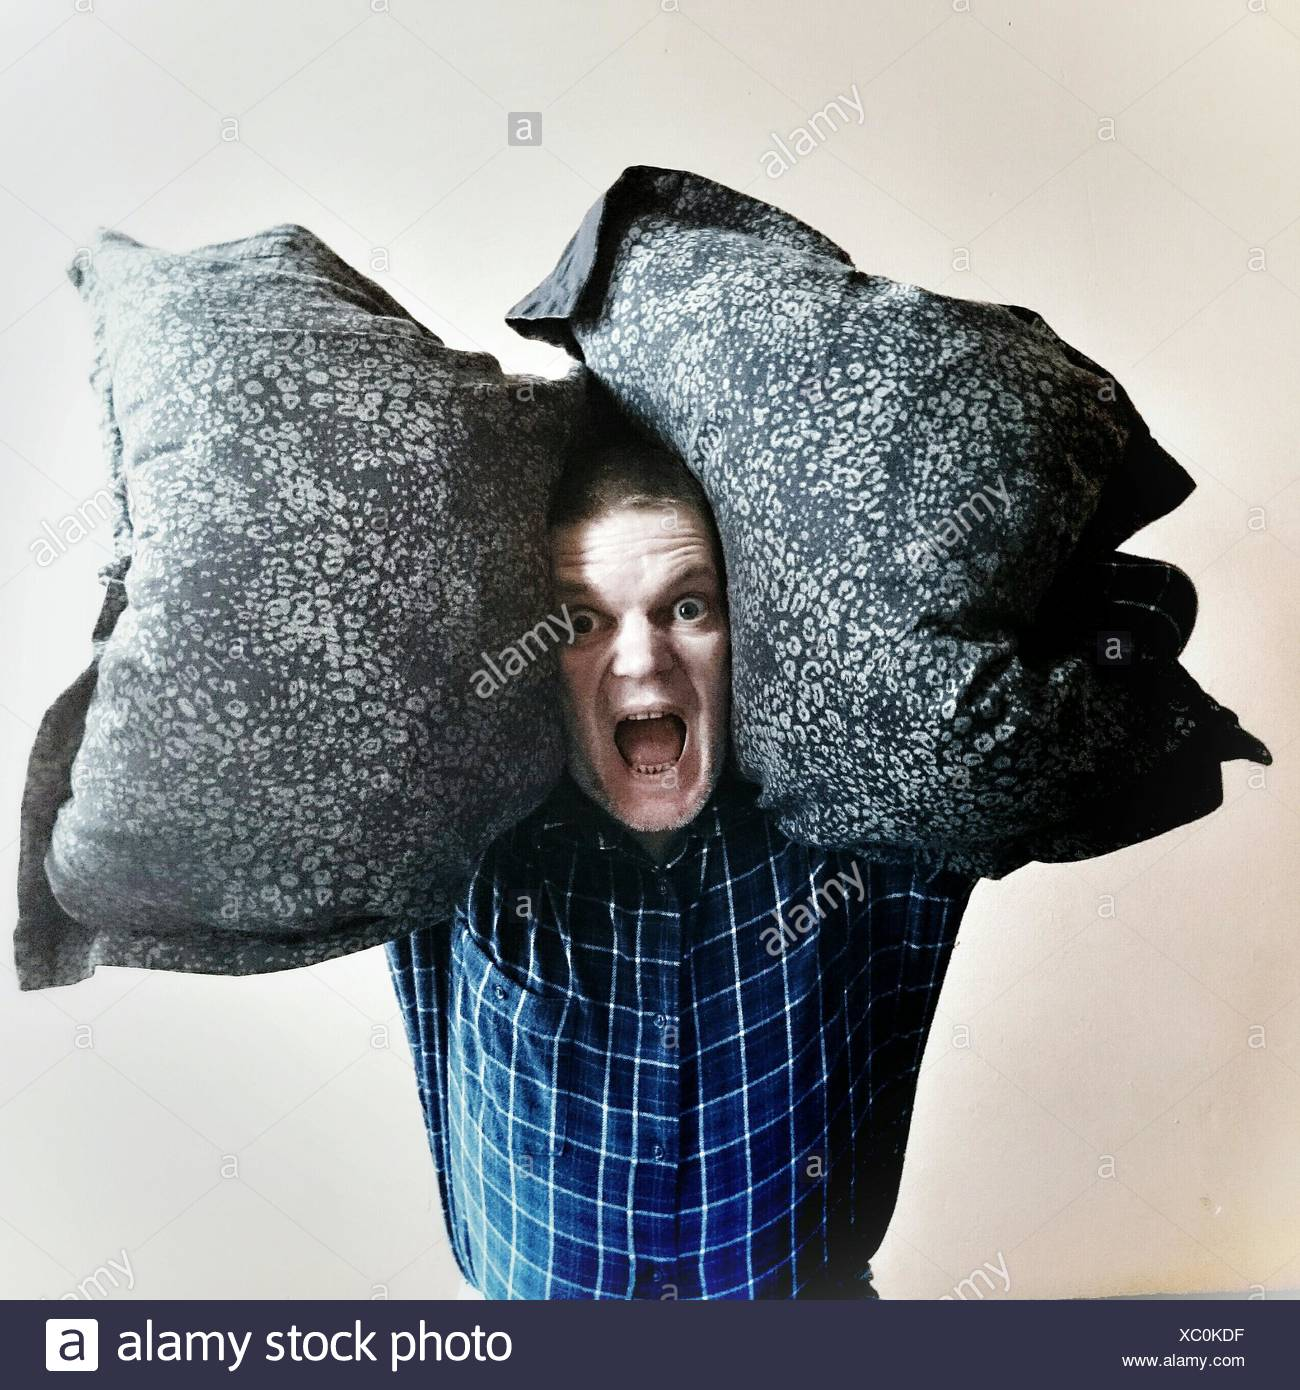 Portrait Of Man Screaming While Carrying Pillows Against White Background - Stock Image